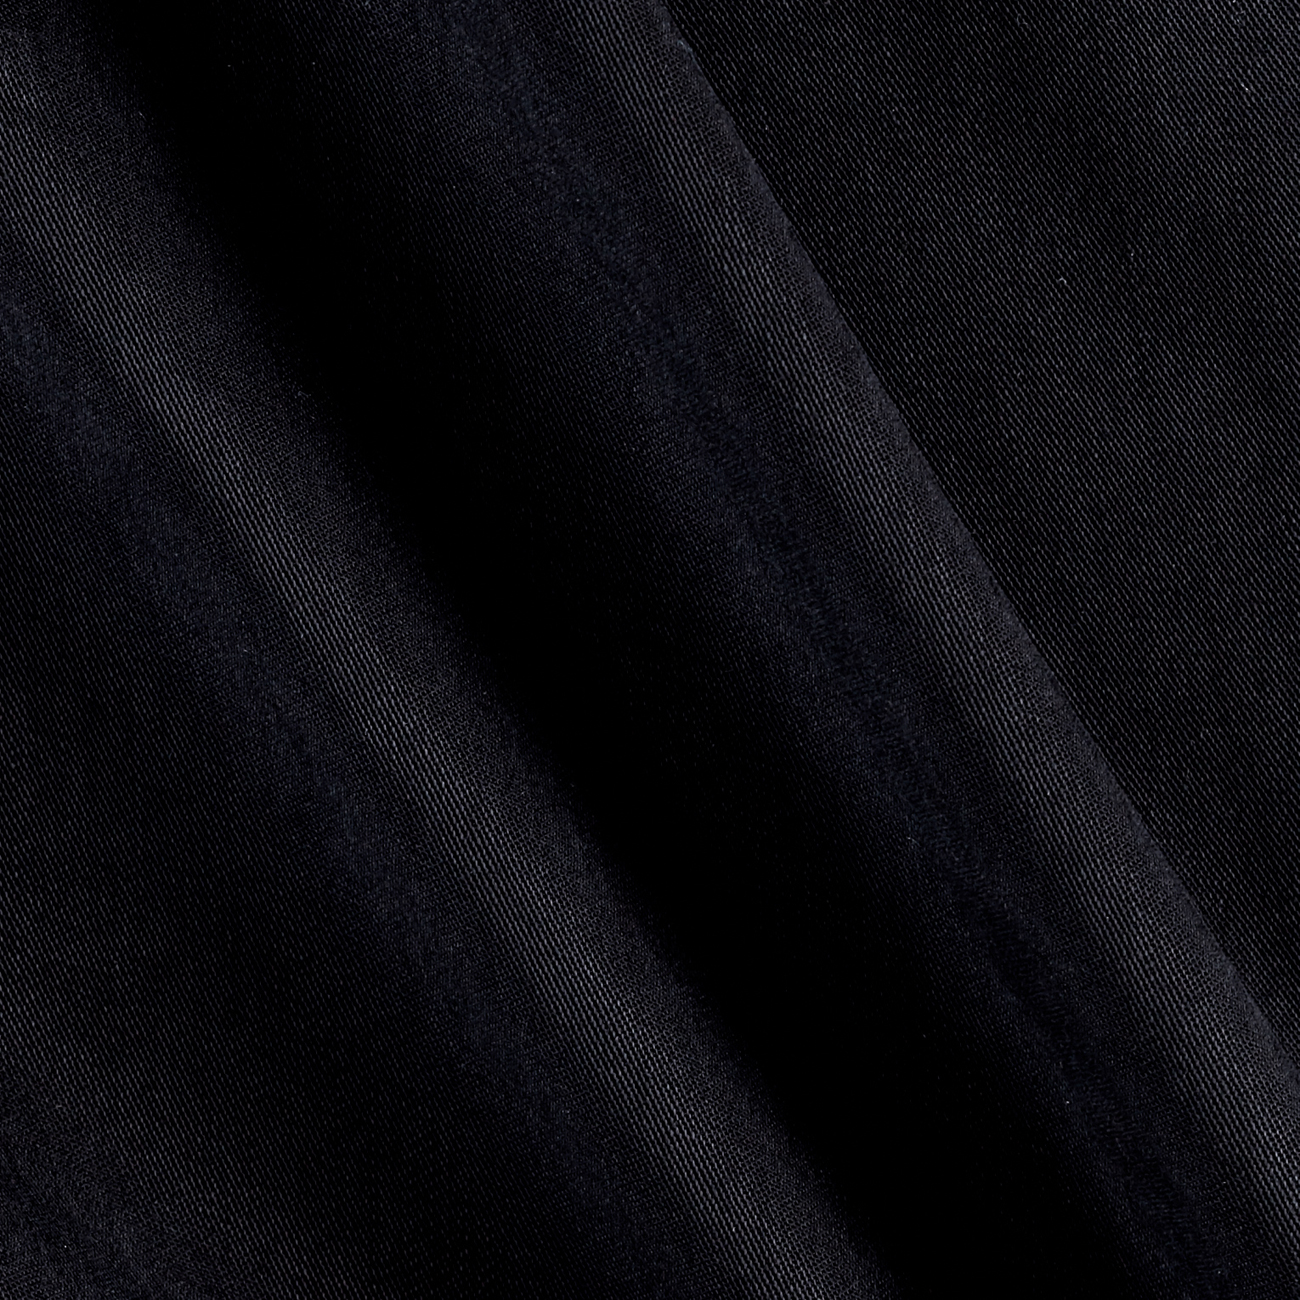 Lyocell Solid Black Fabric by Neiman in USA